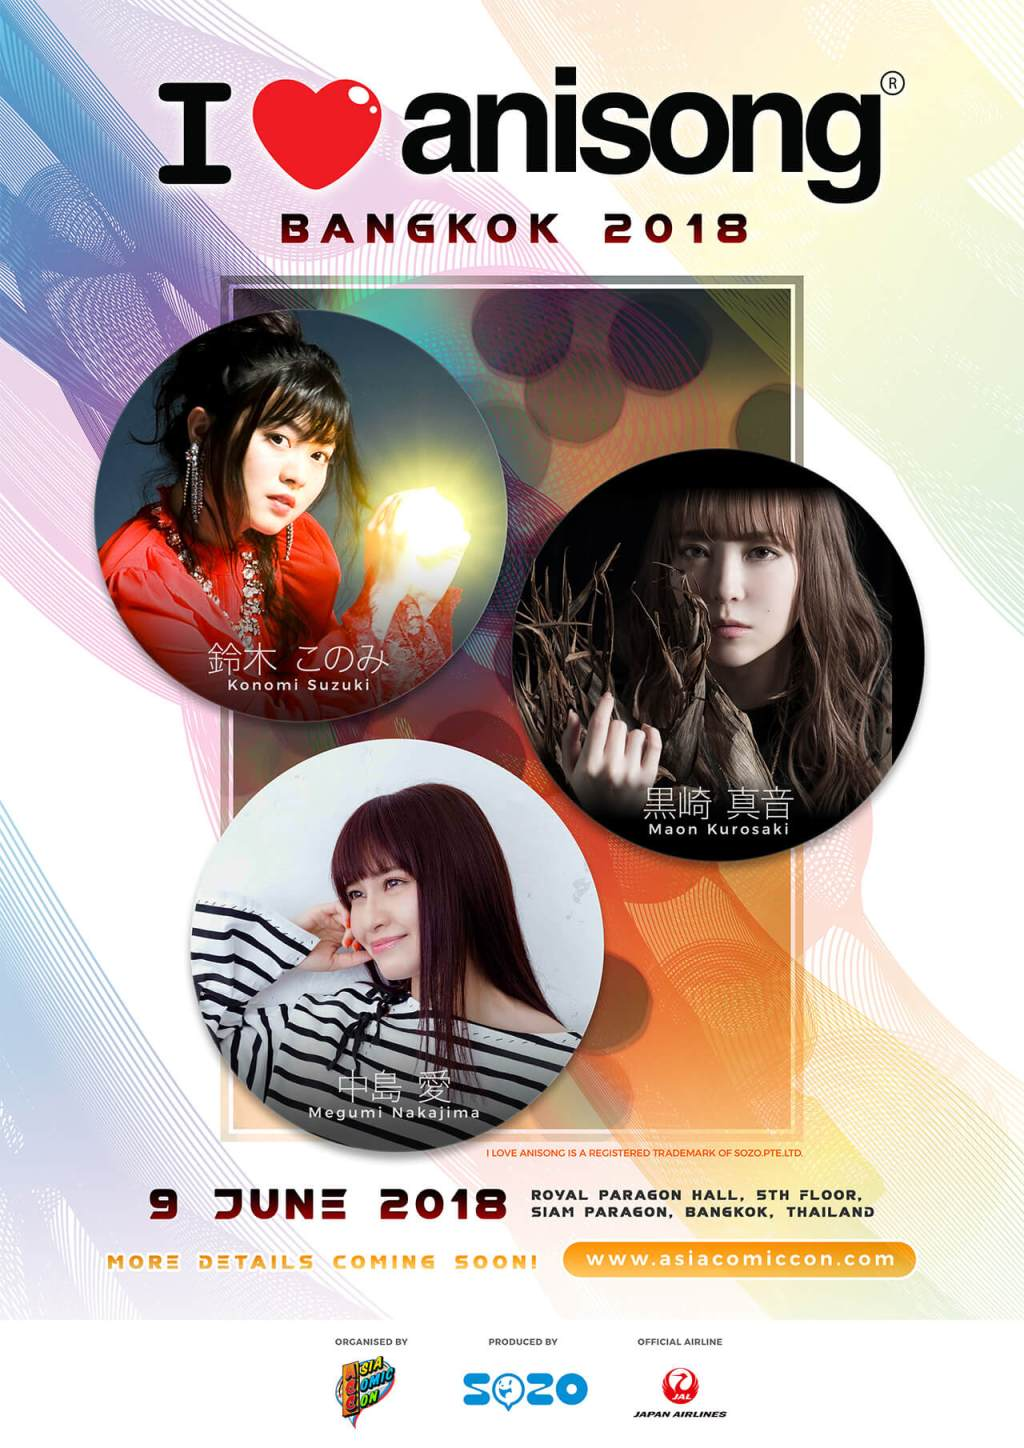 Get Ready for I Love Anisong Bangkok 2018!